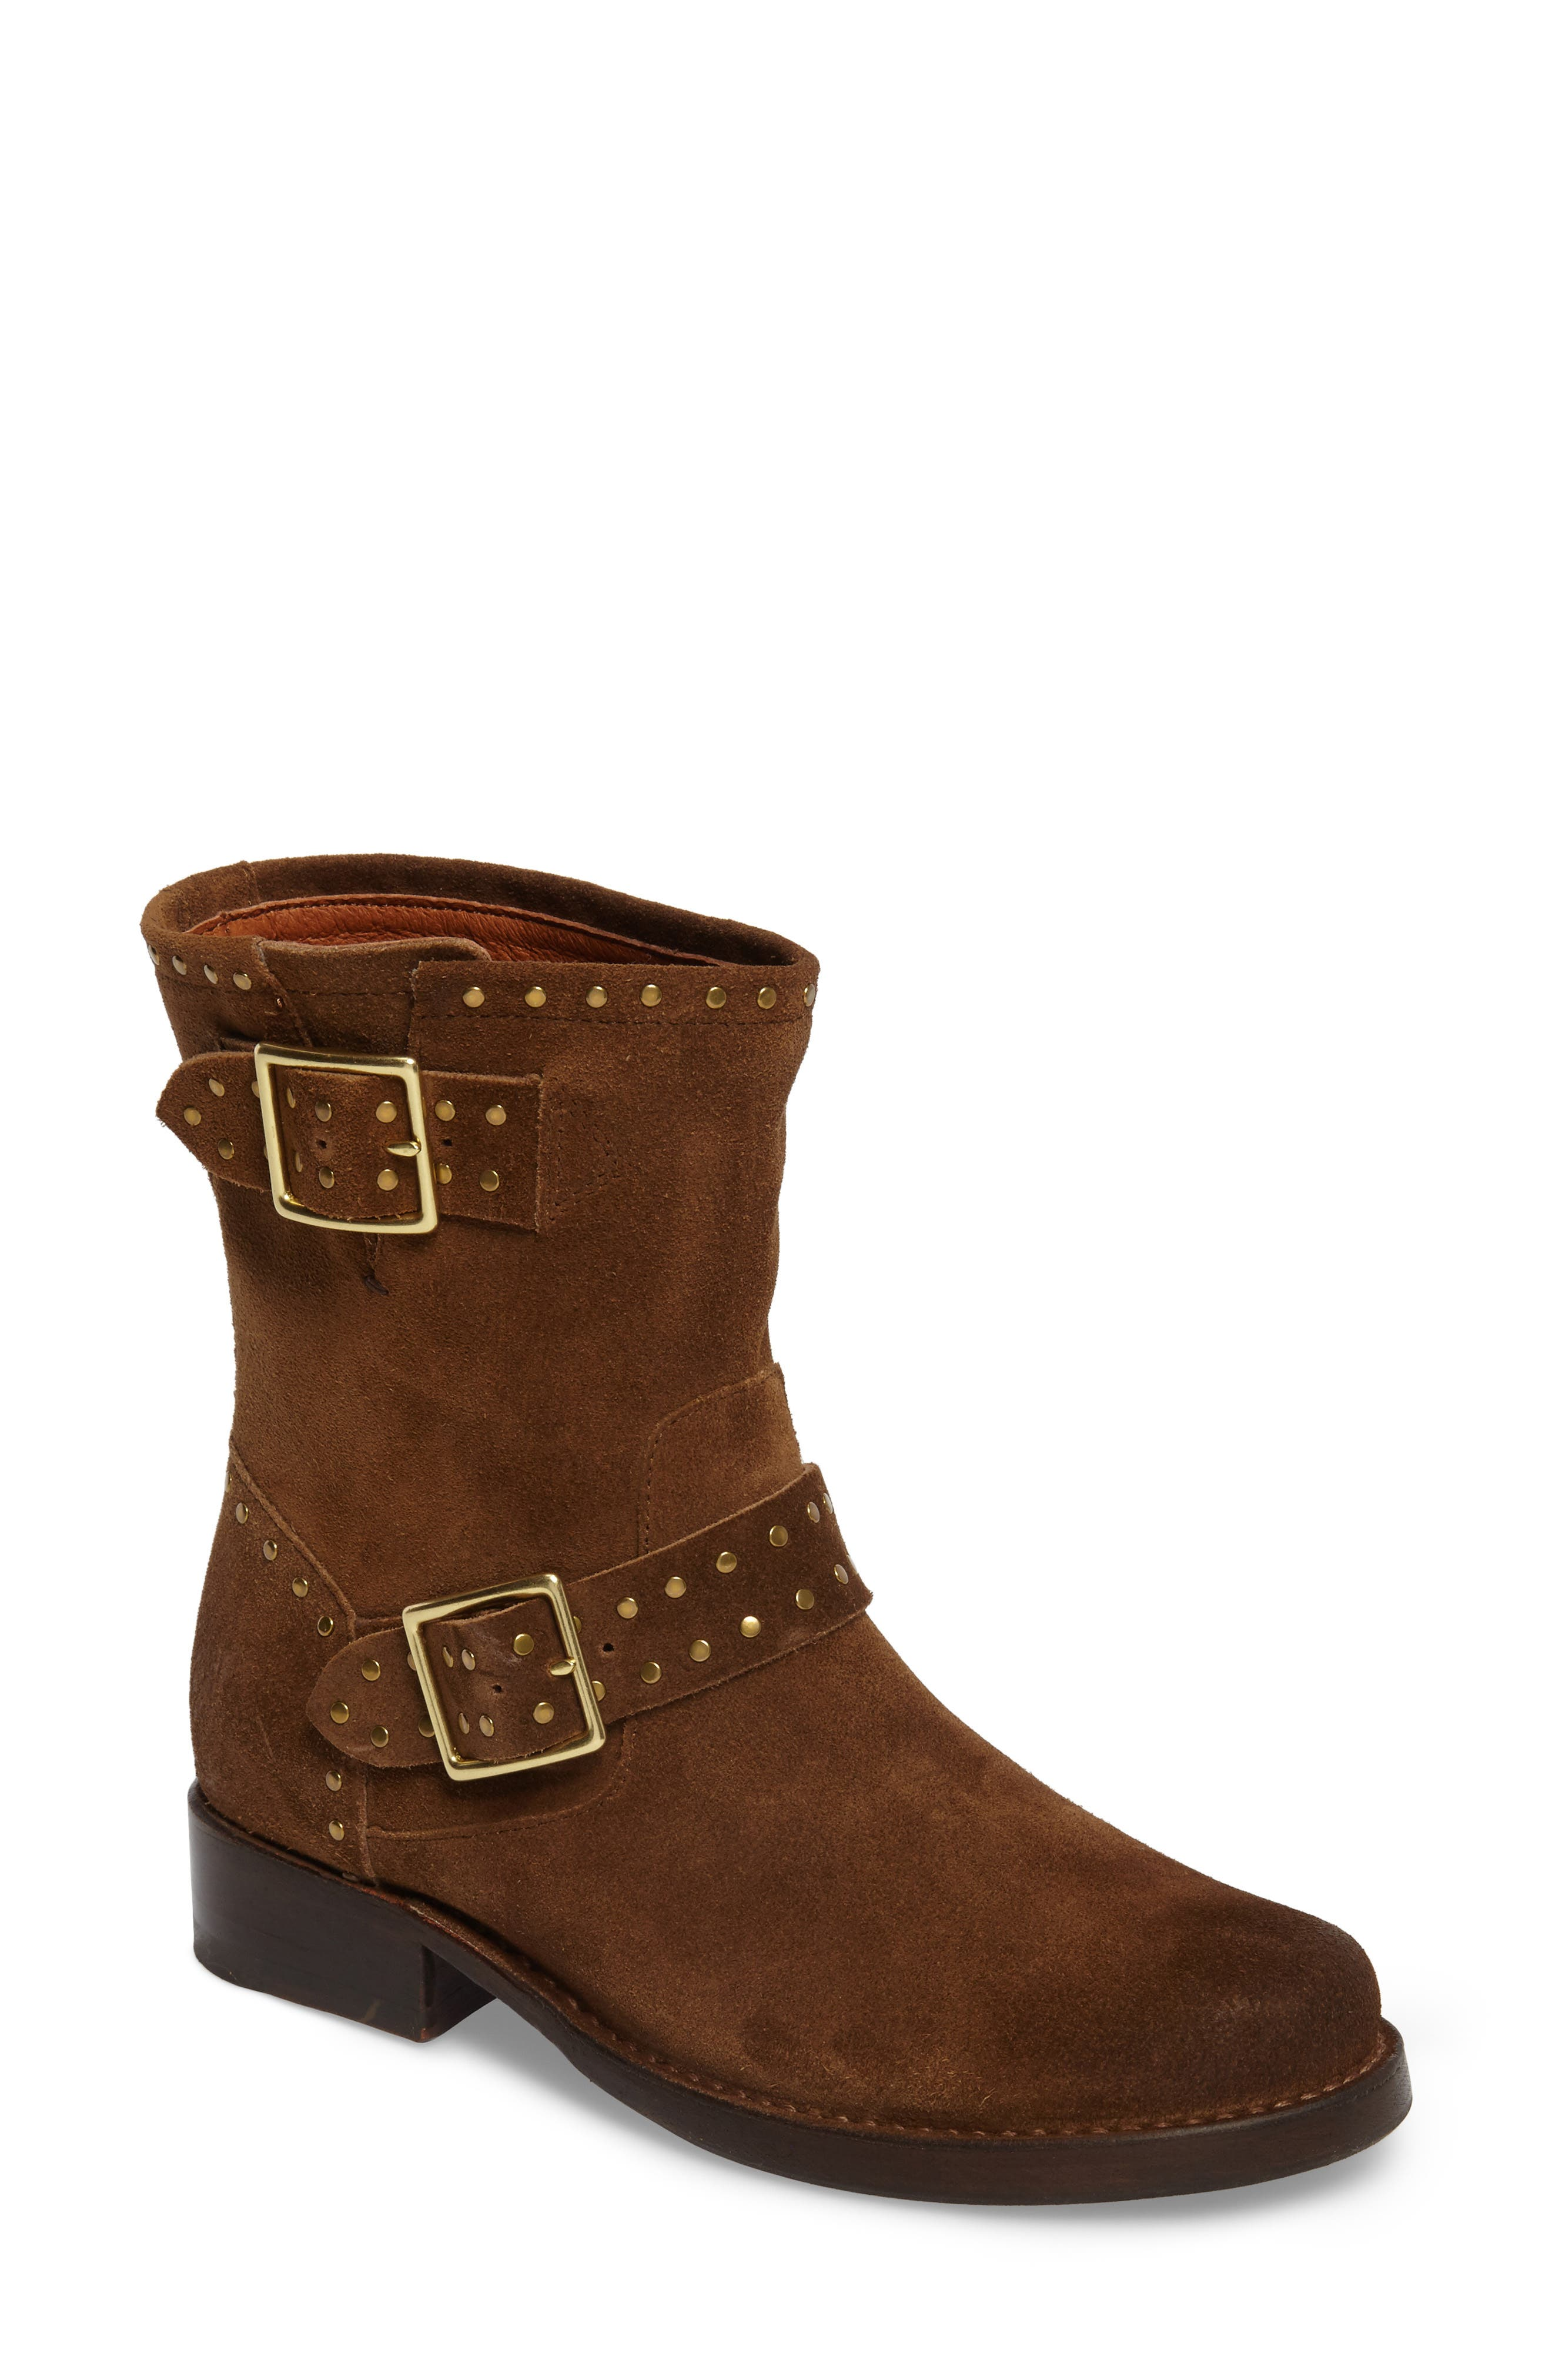 Vicky Stud Engineer Boot,                         Main,                         color, Chestnut Suede